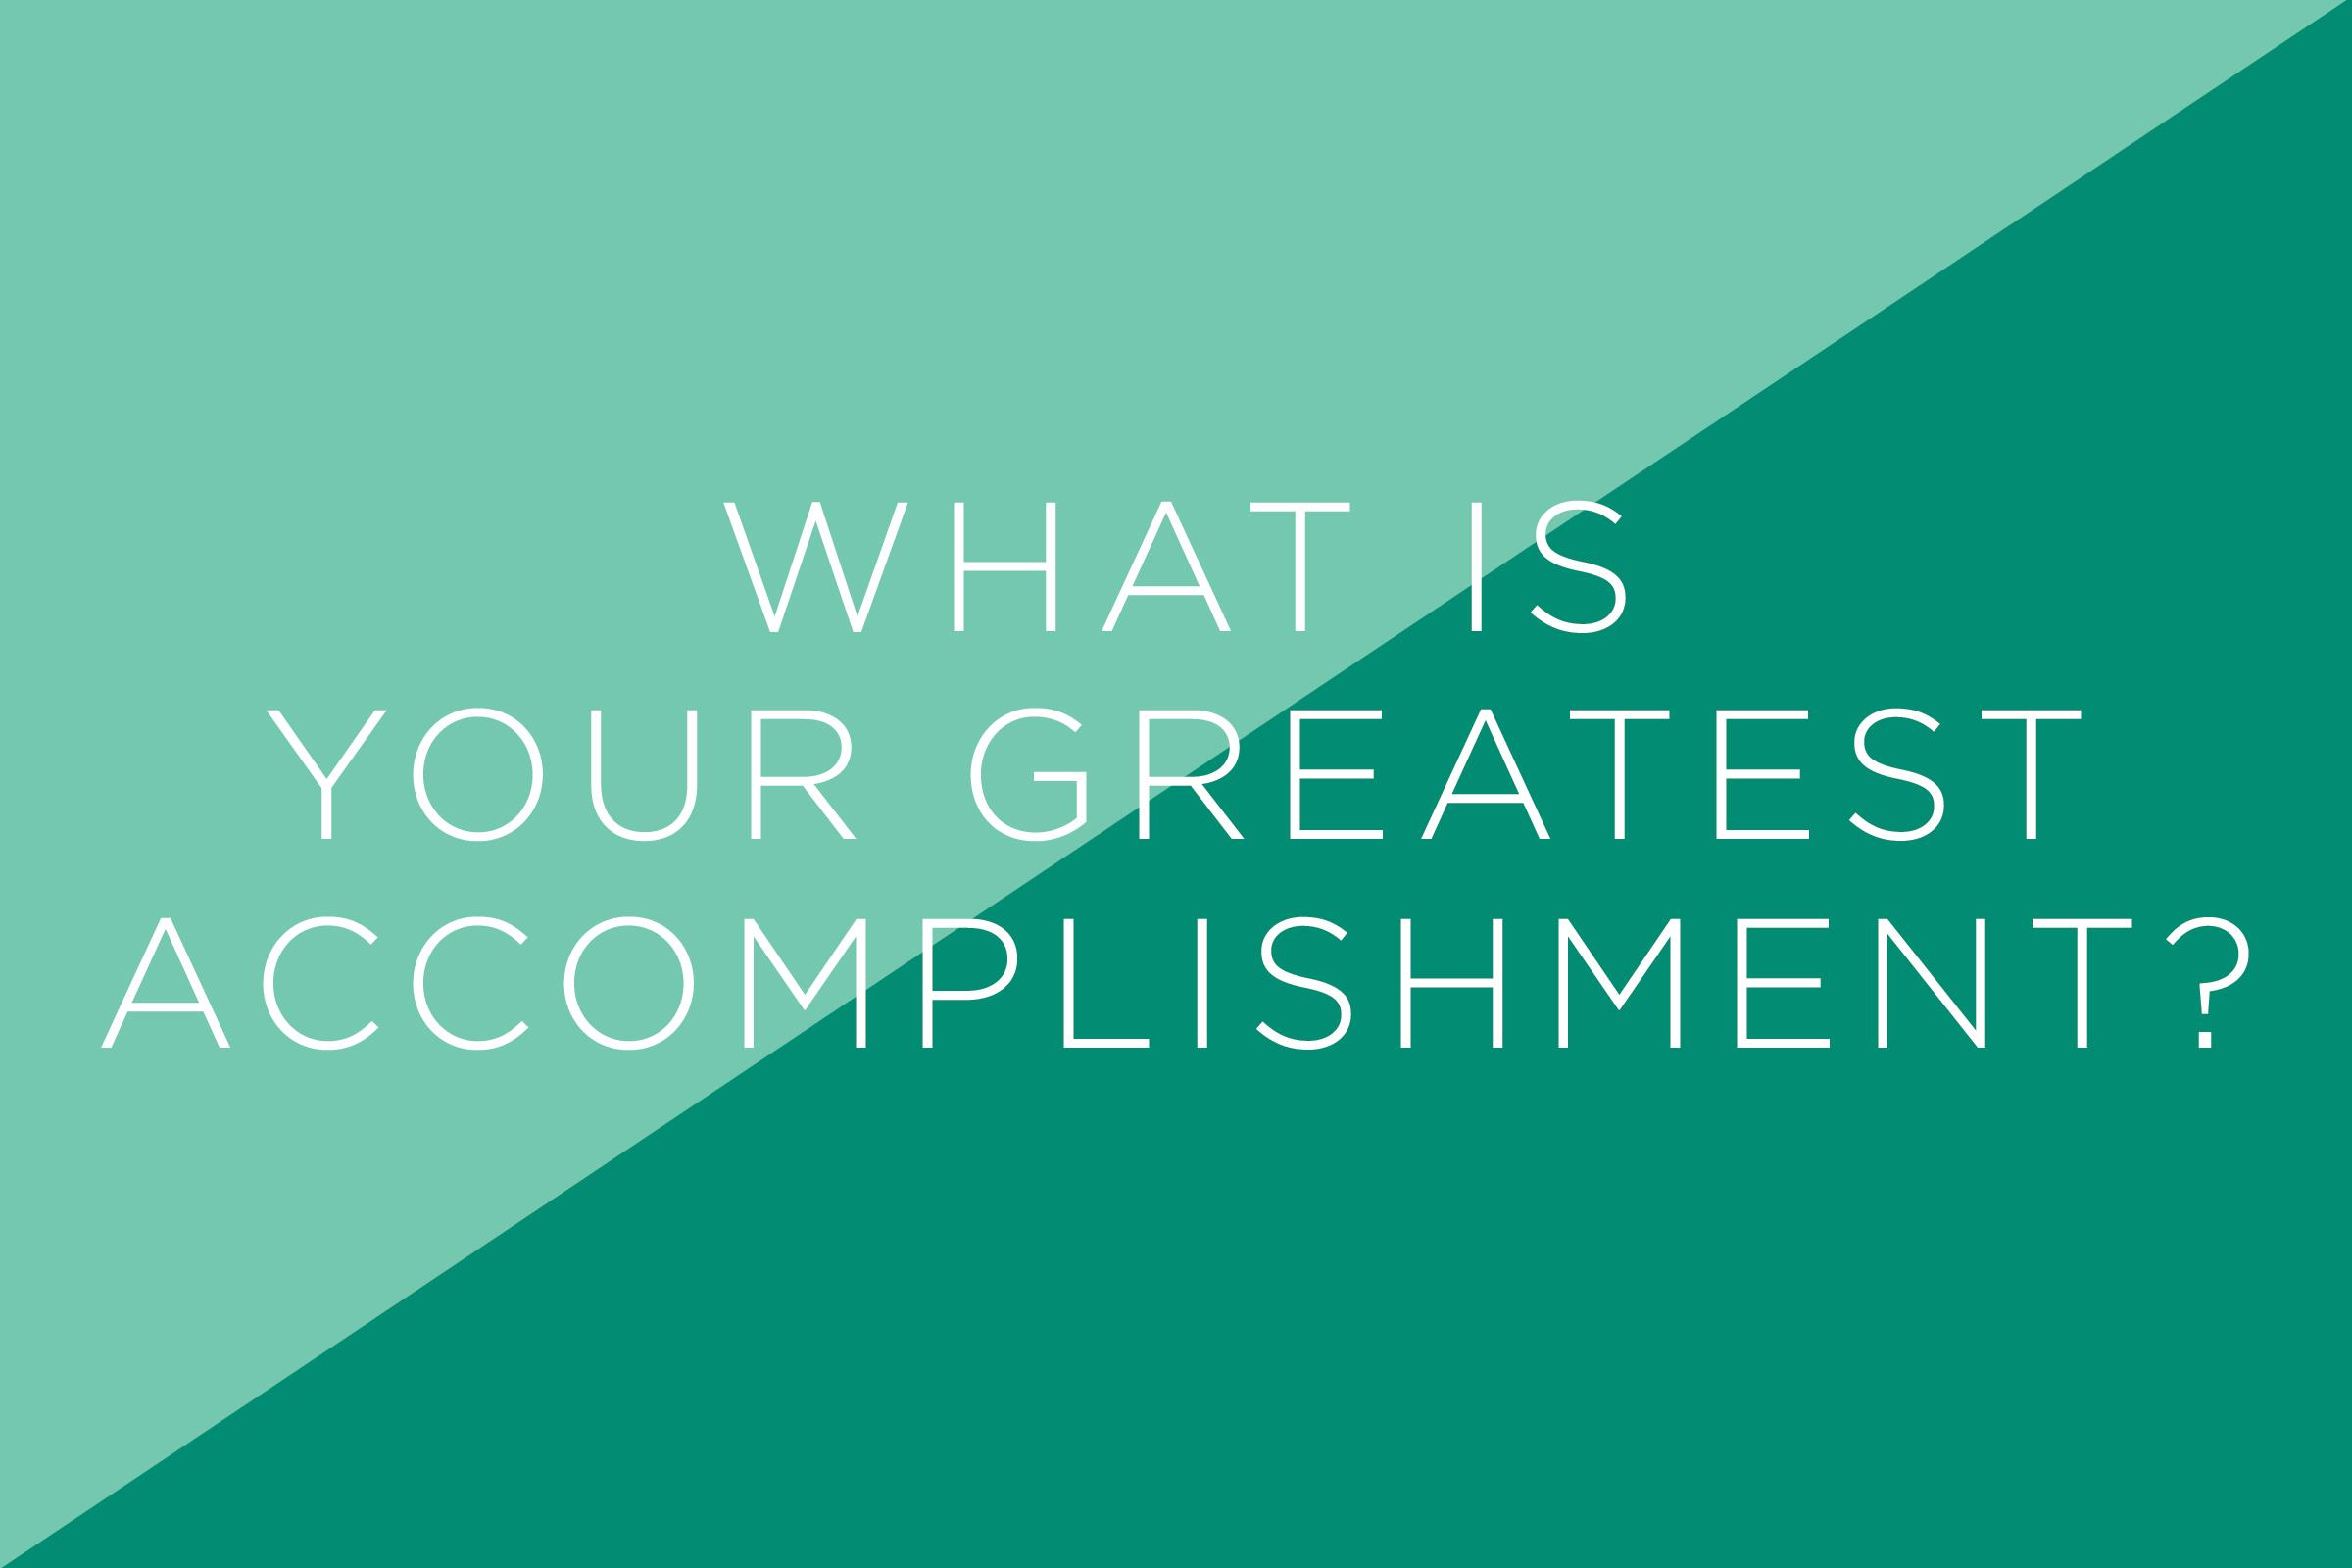 Acomplishment inspire otherssharing your greatest accomplishment below